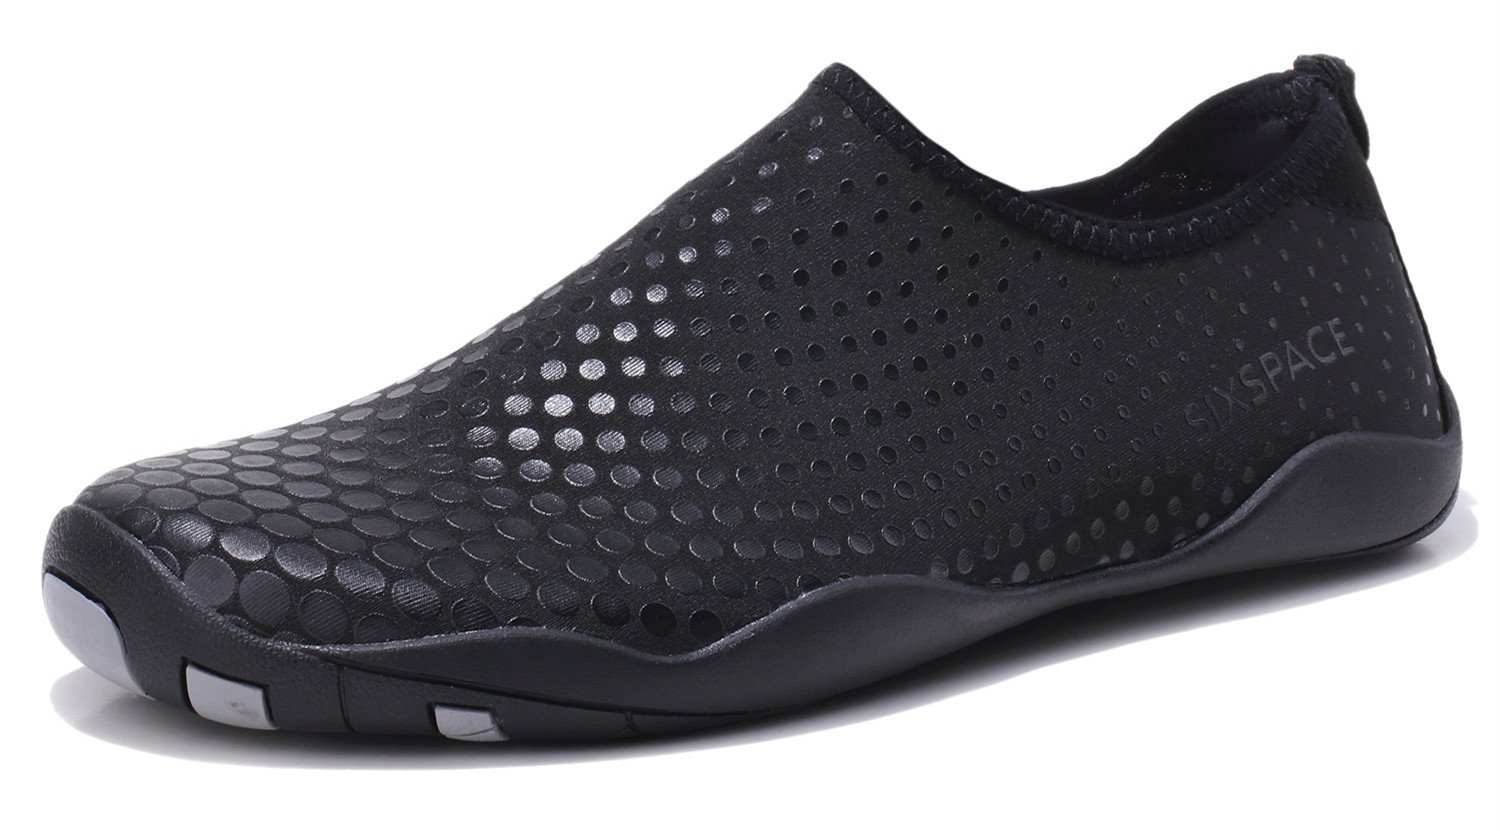 Sixspace Men Women Water Shoes Quick-Dry Durable Sole Barefoot Water Skin Shoes for Beach Pool Surf Yoga Exercise, Black 37